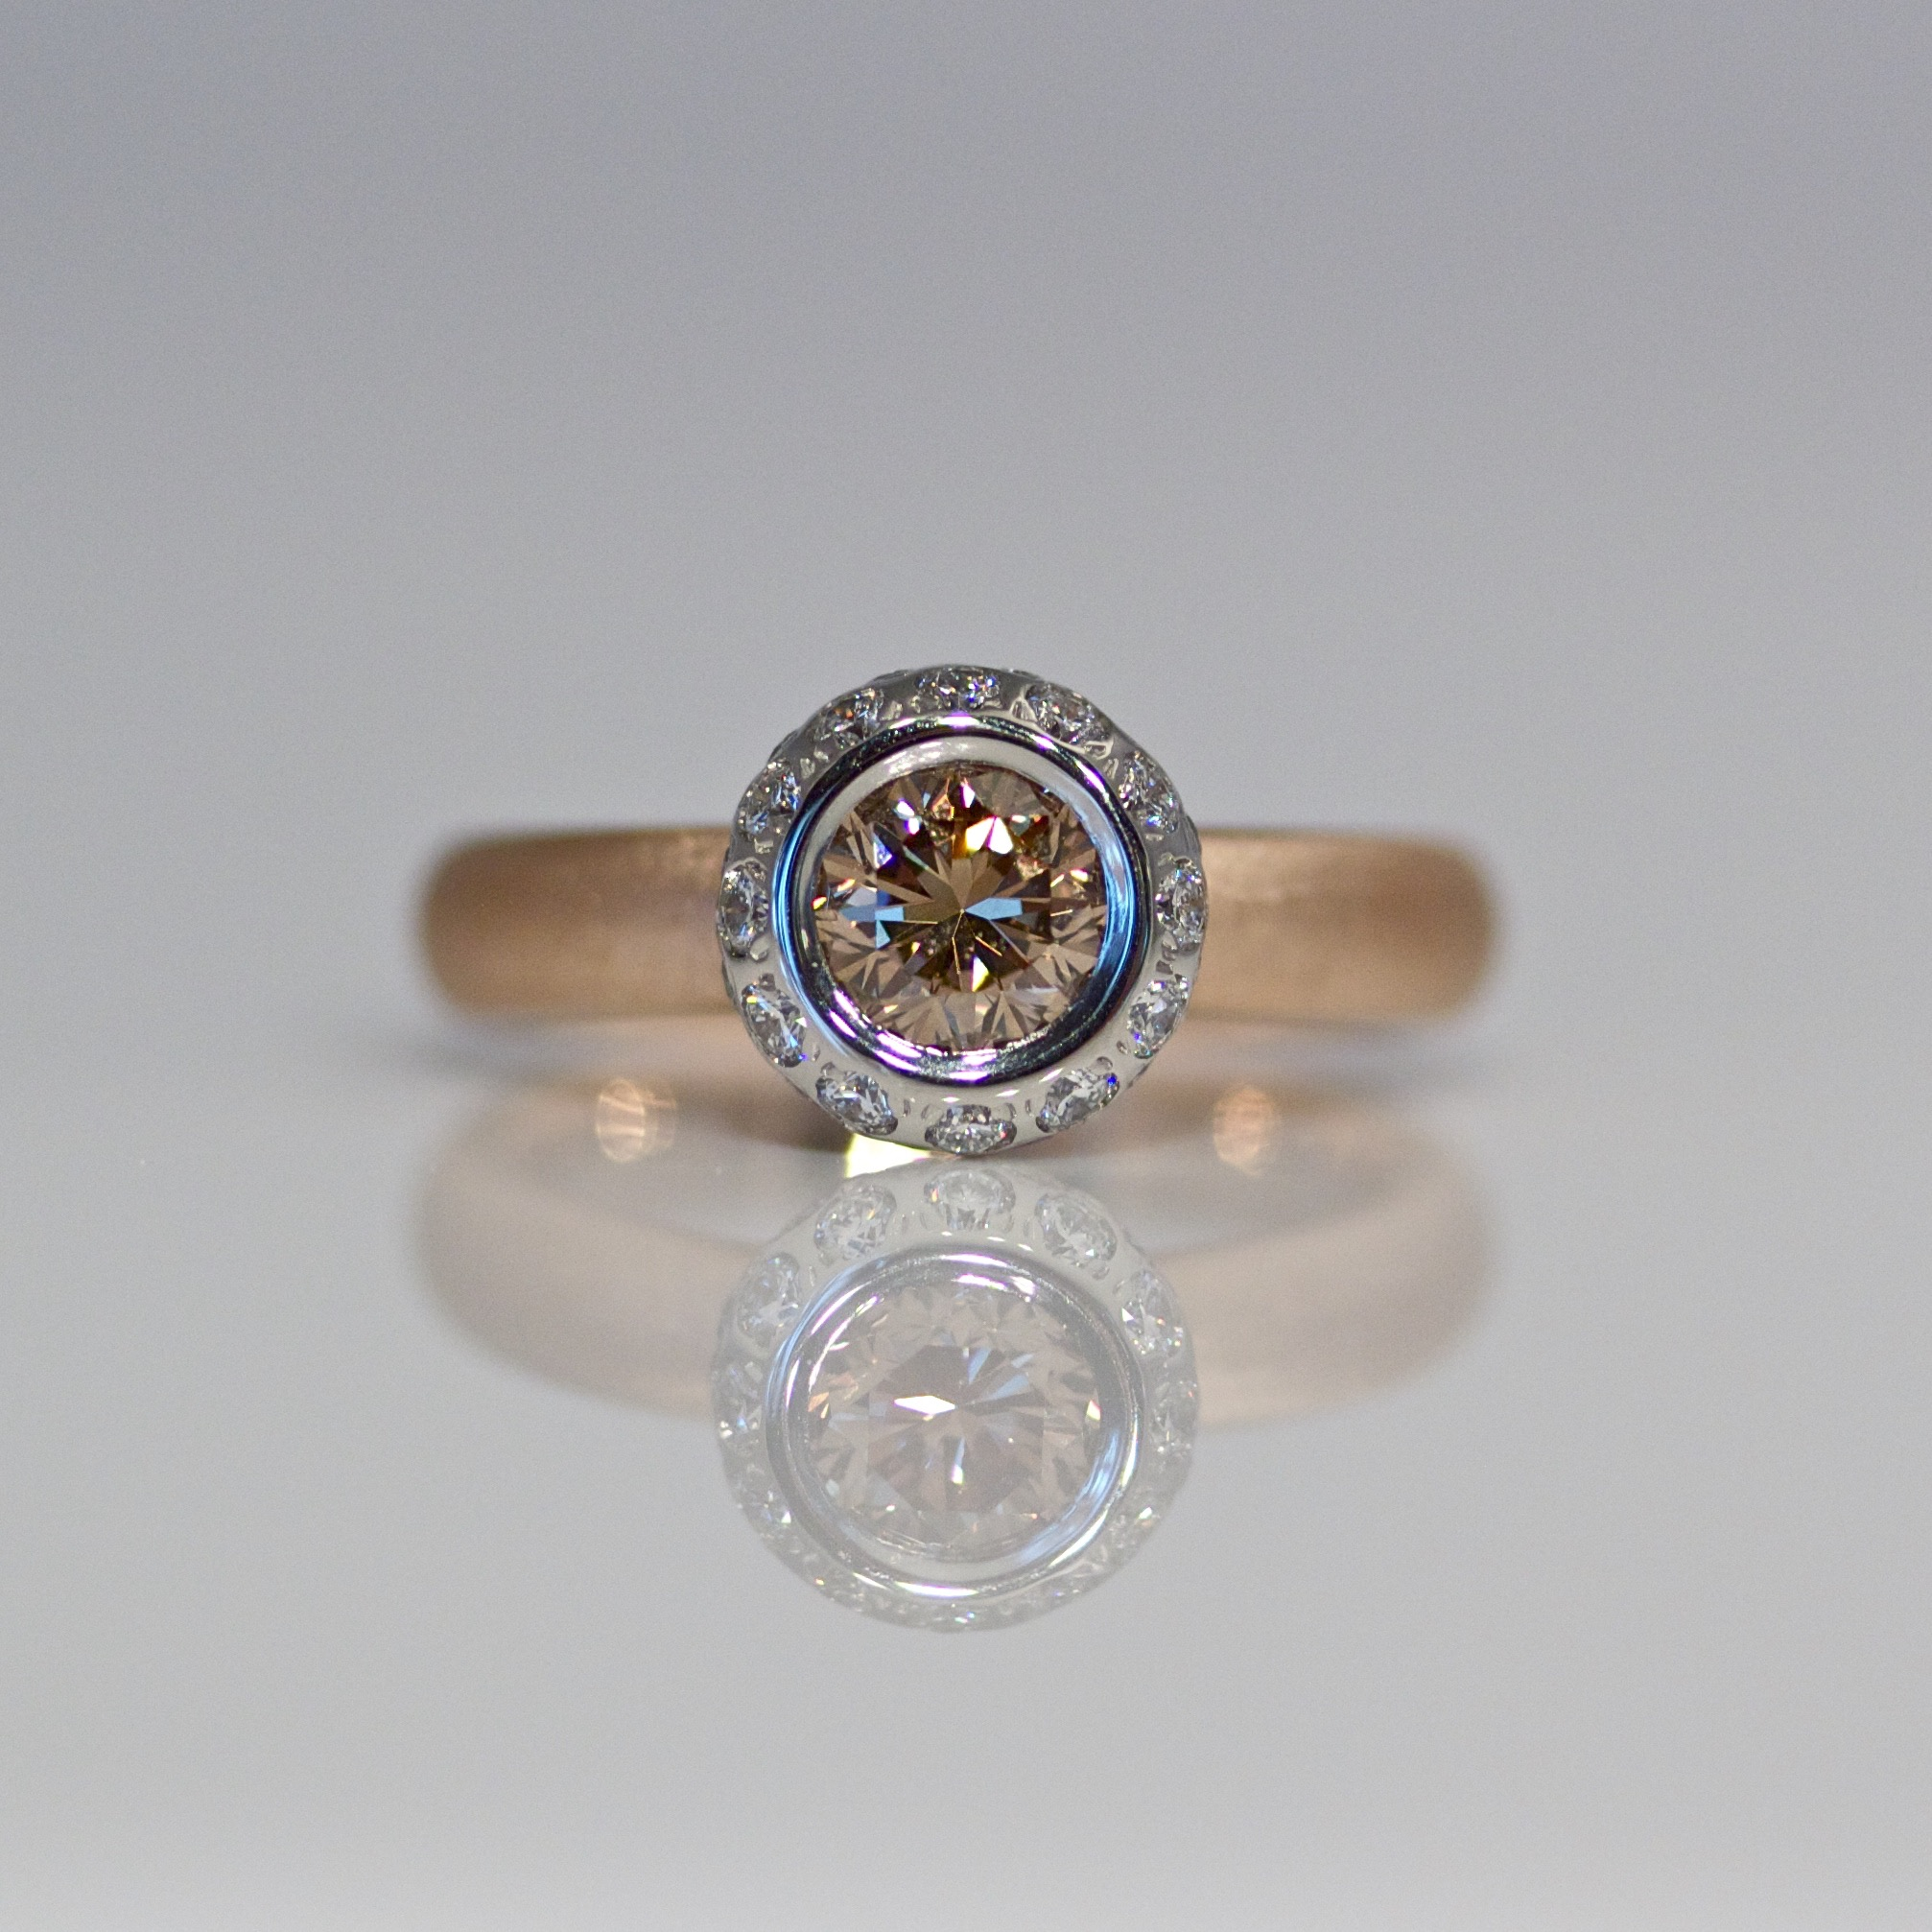 blog aurus design wedding amazing rings ring dsc london own bespoke your with engagement